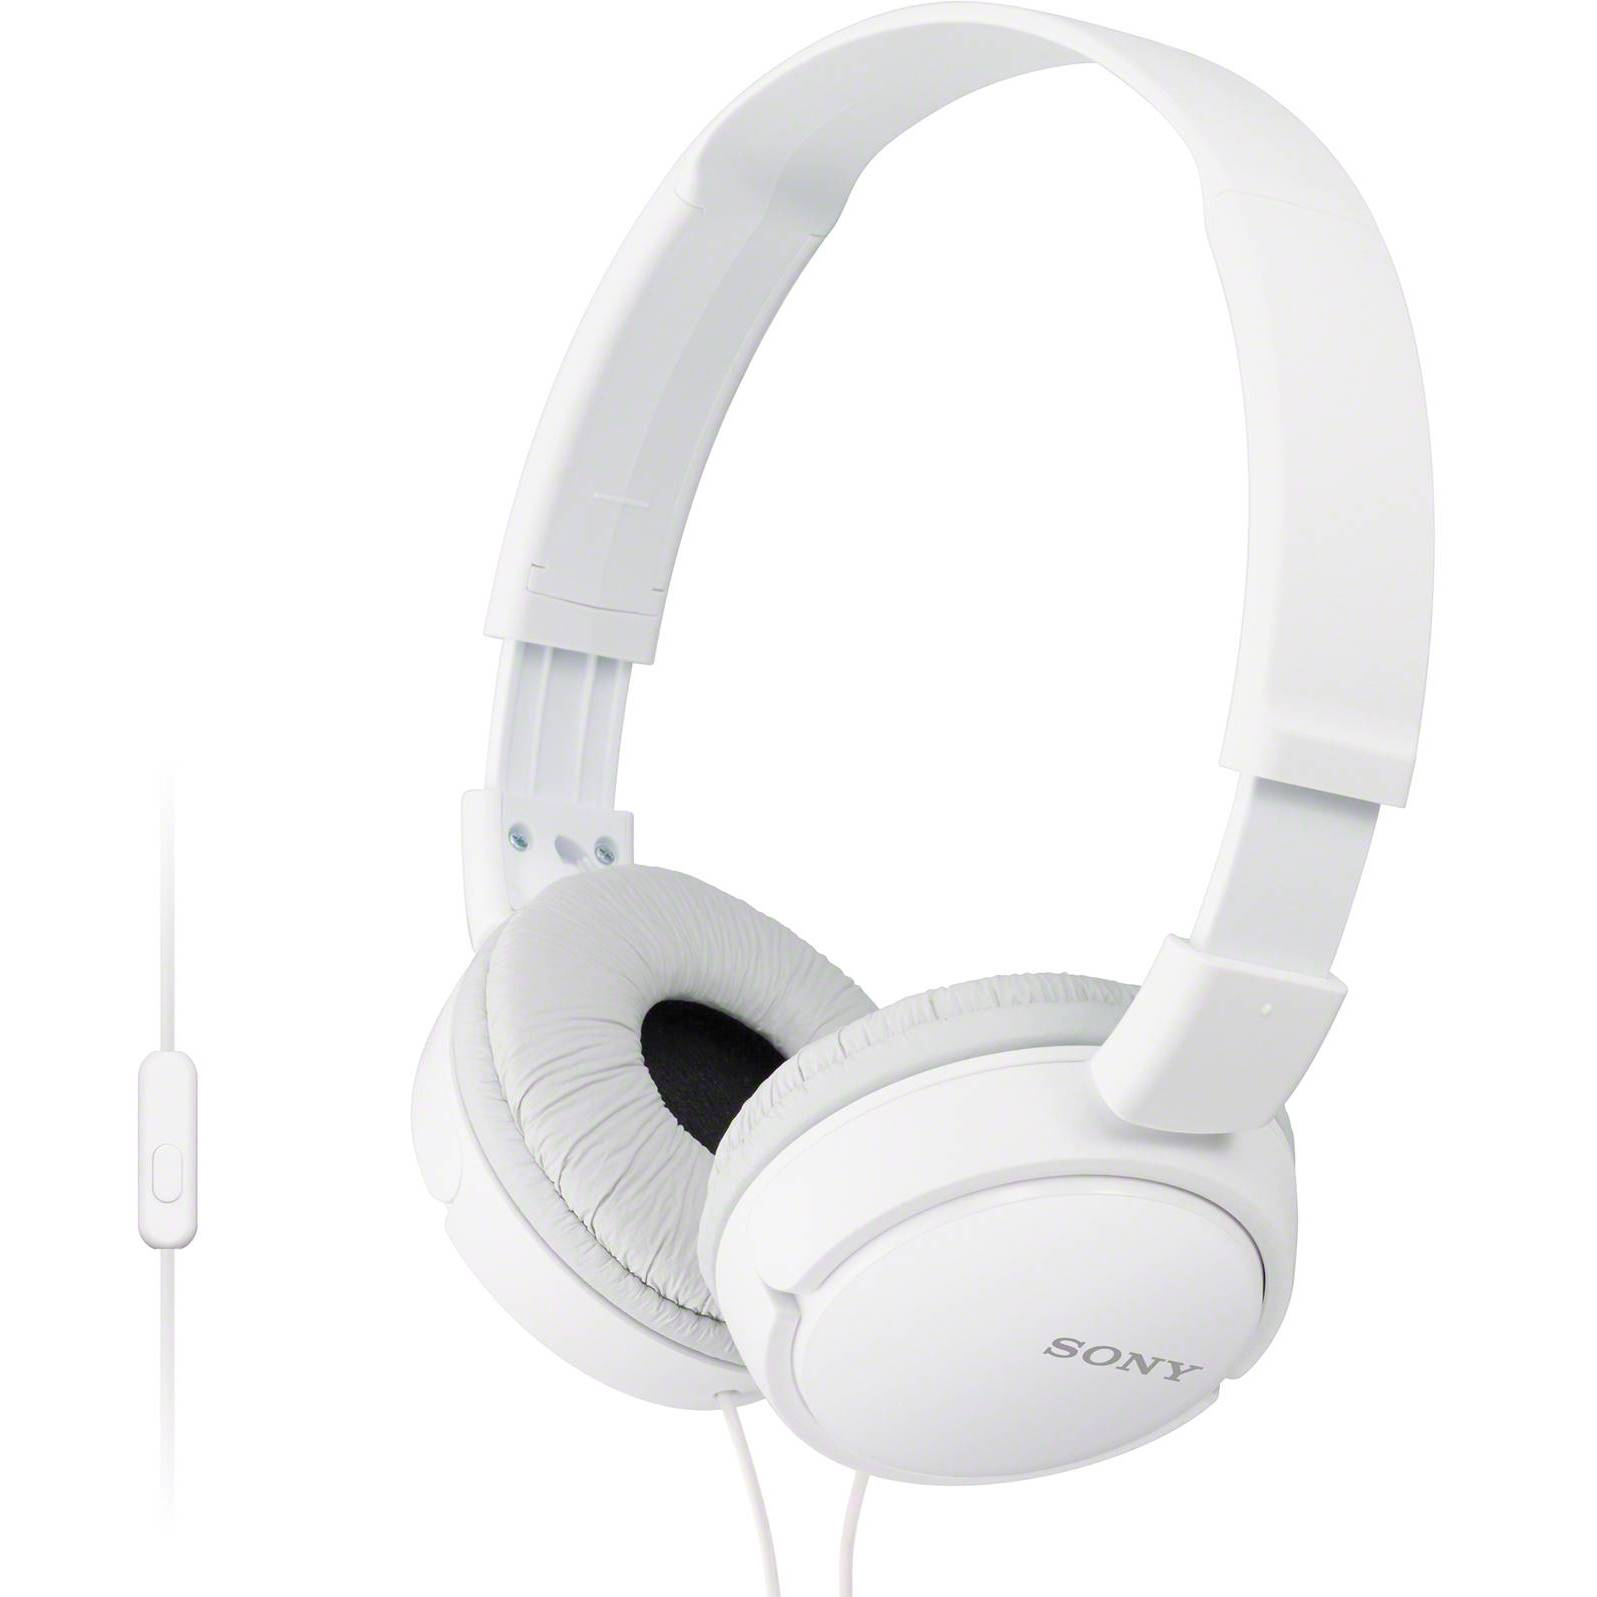 sony mdr zx110ap extra bass wired headphones with mic smartphone Pillow Packaging Equipment sony mdr zx110ap extra bass wired headphones with mic smartphone headset for iphone